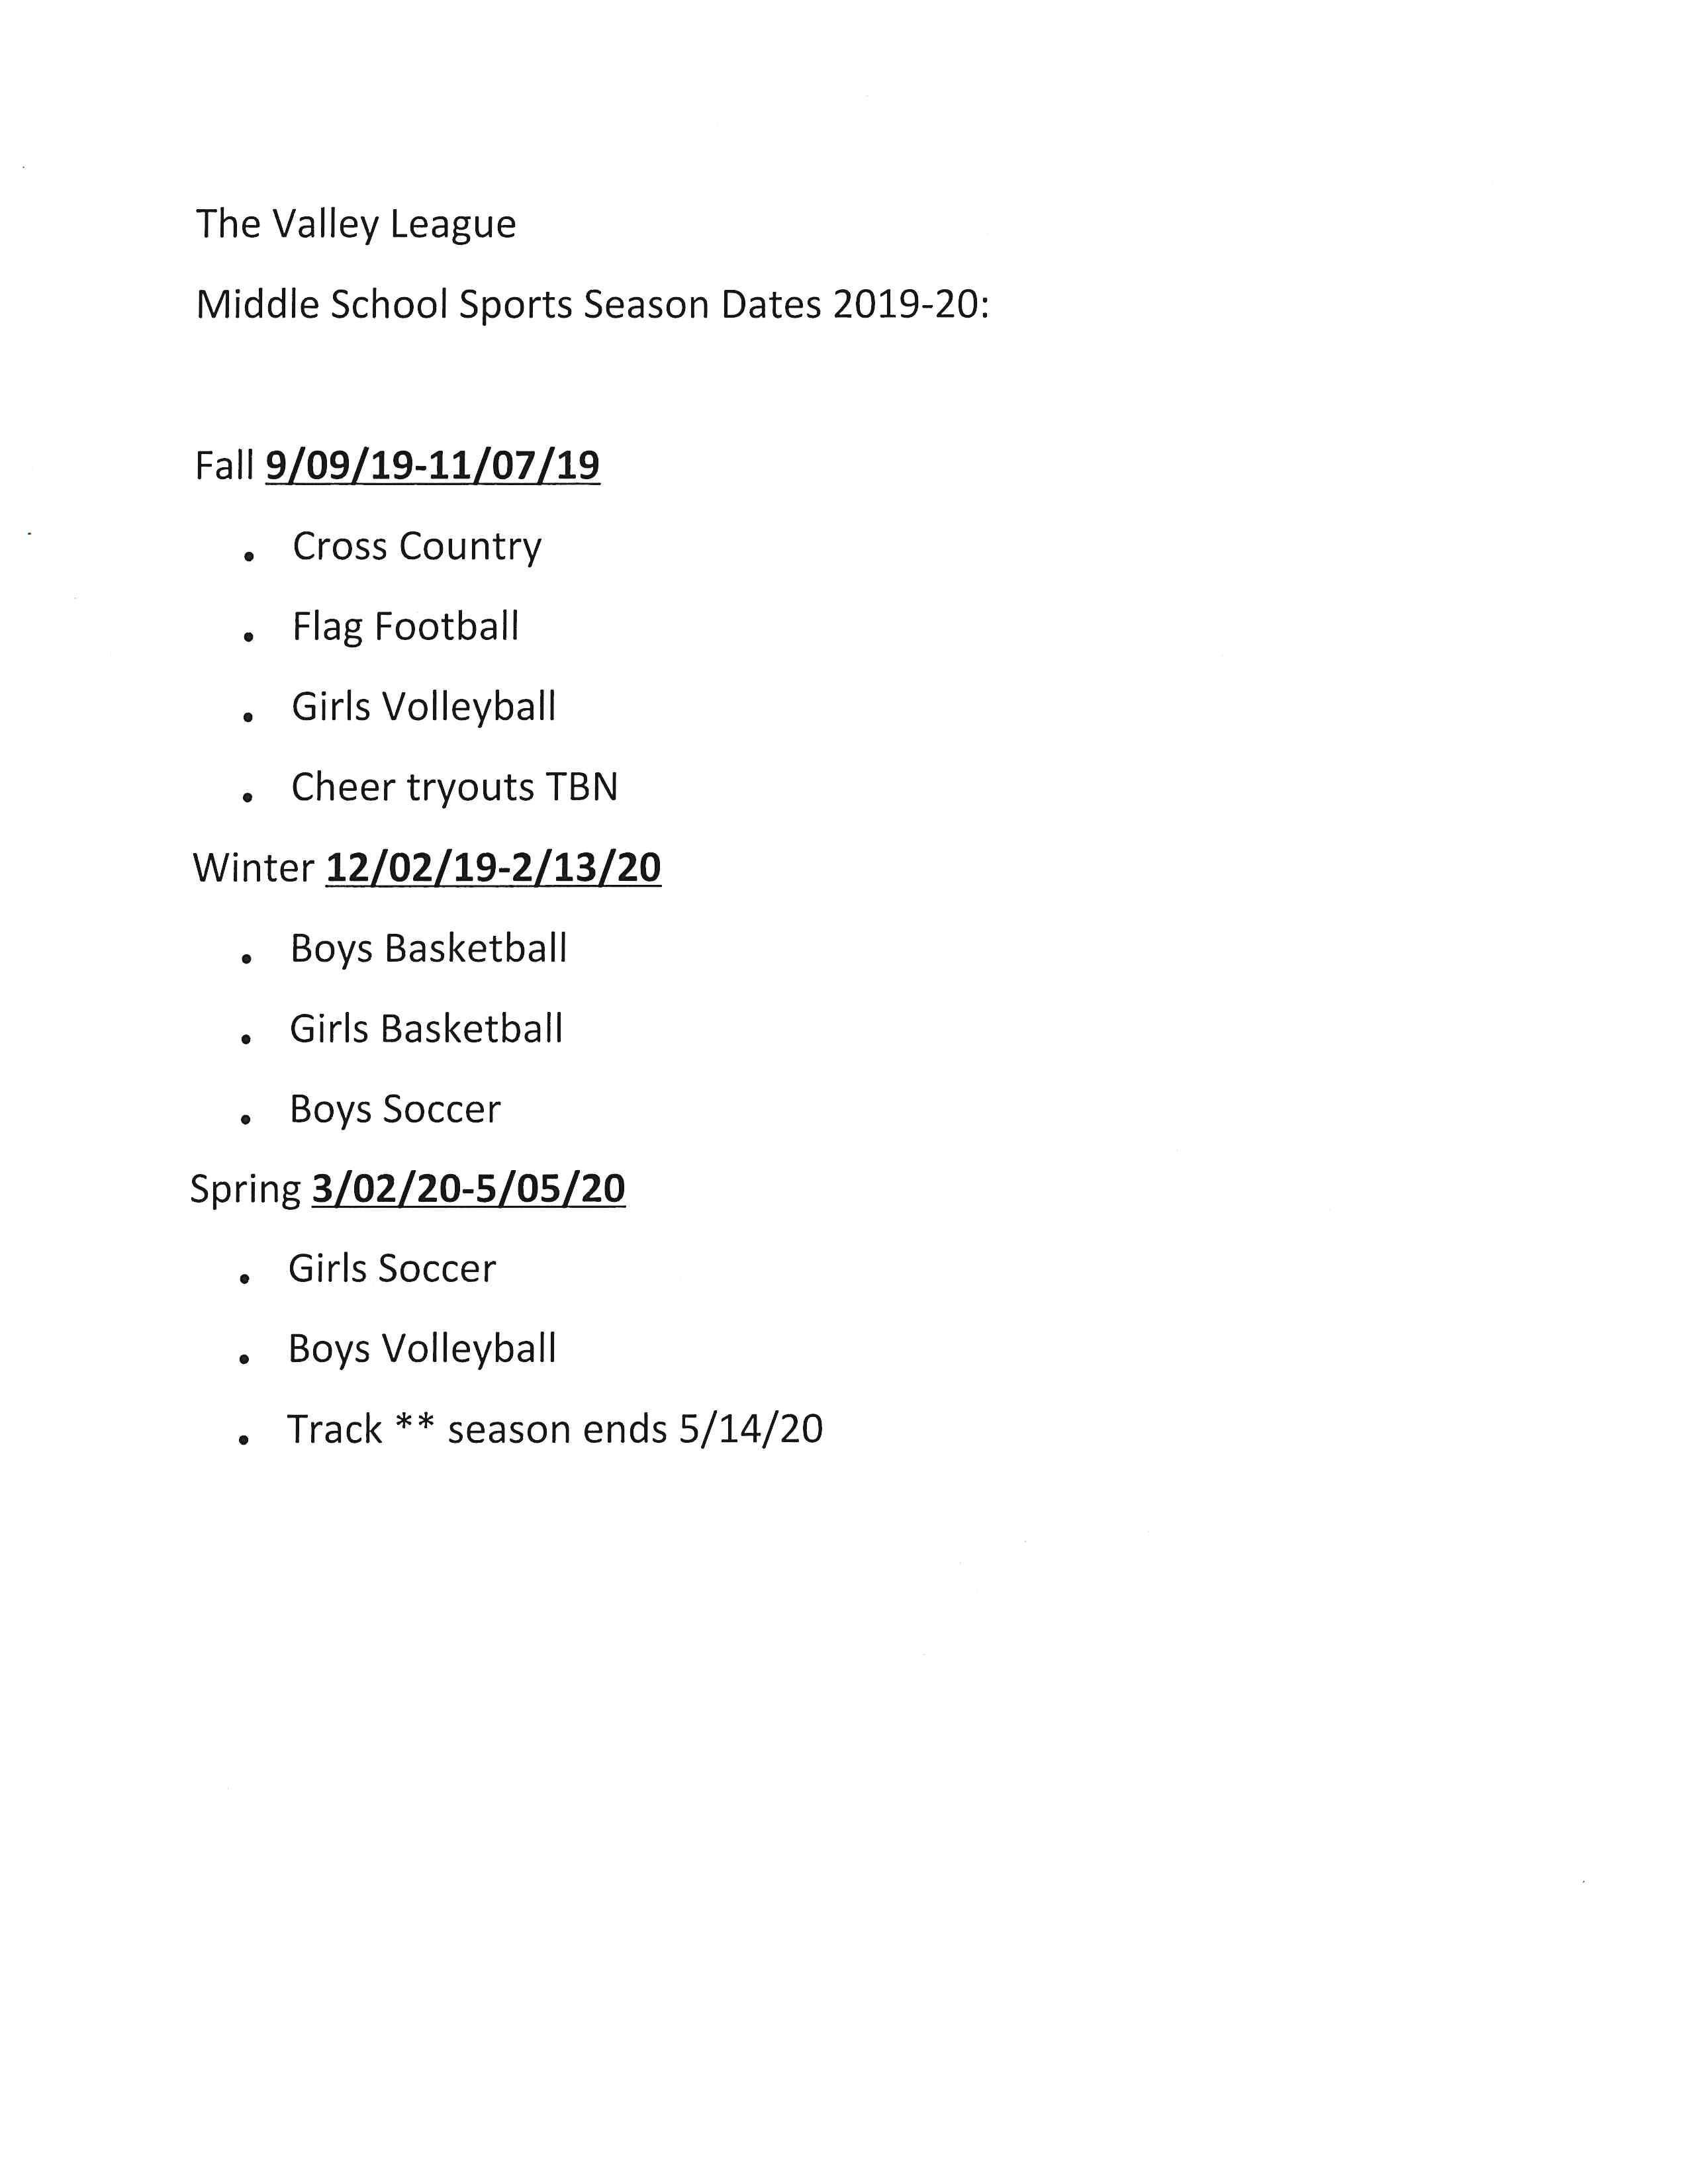 Middle School Sports Season Dates 2019/2020